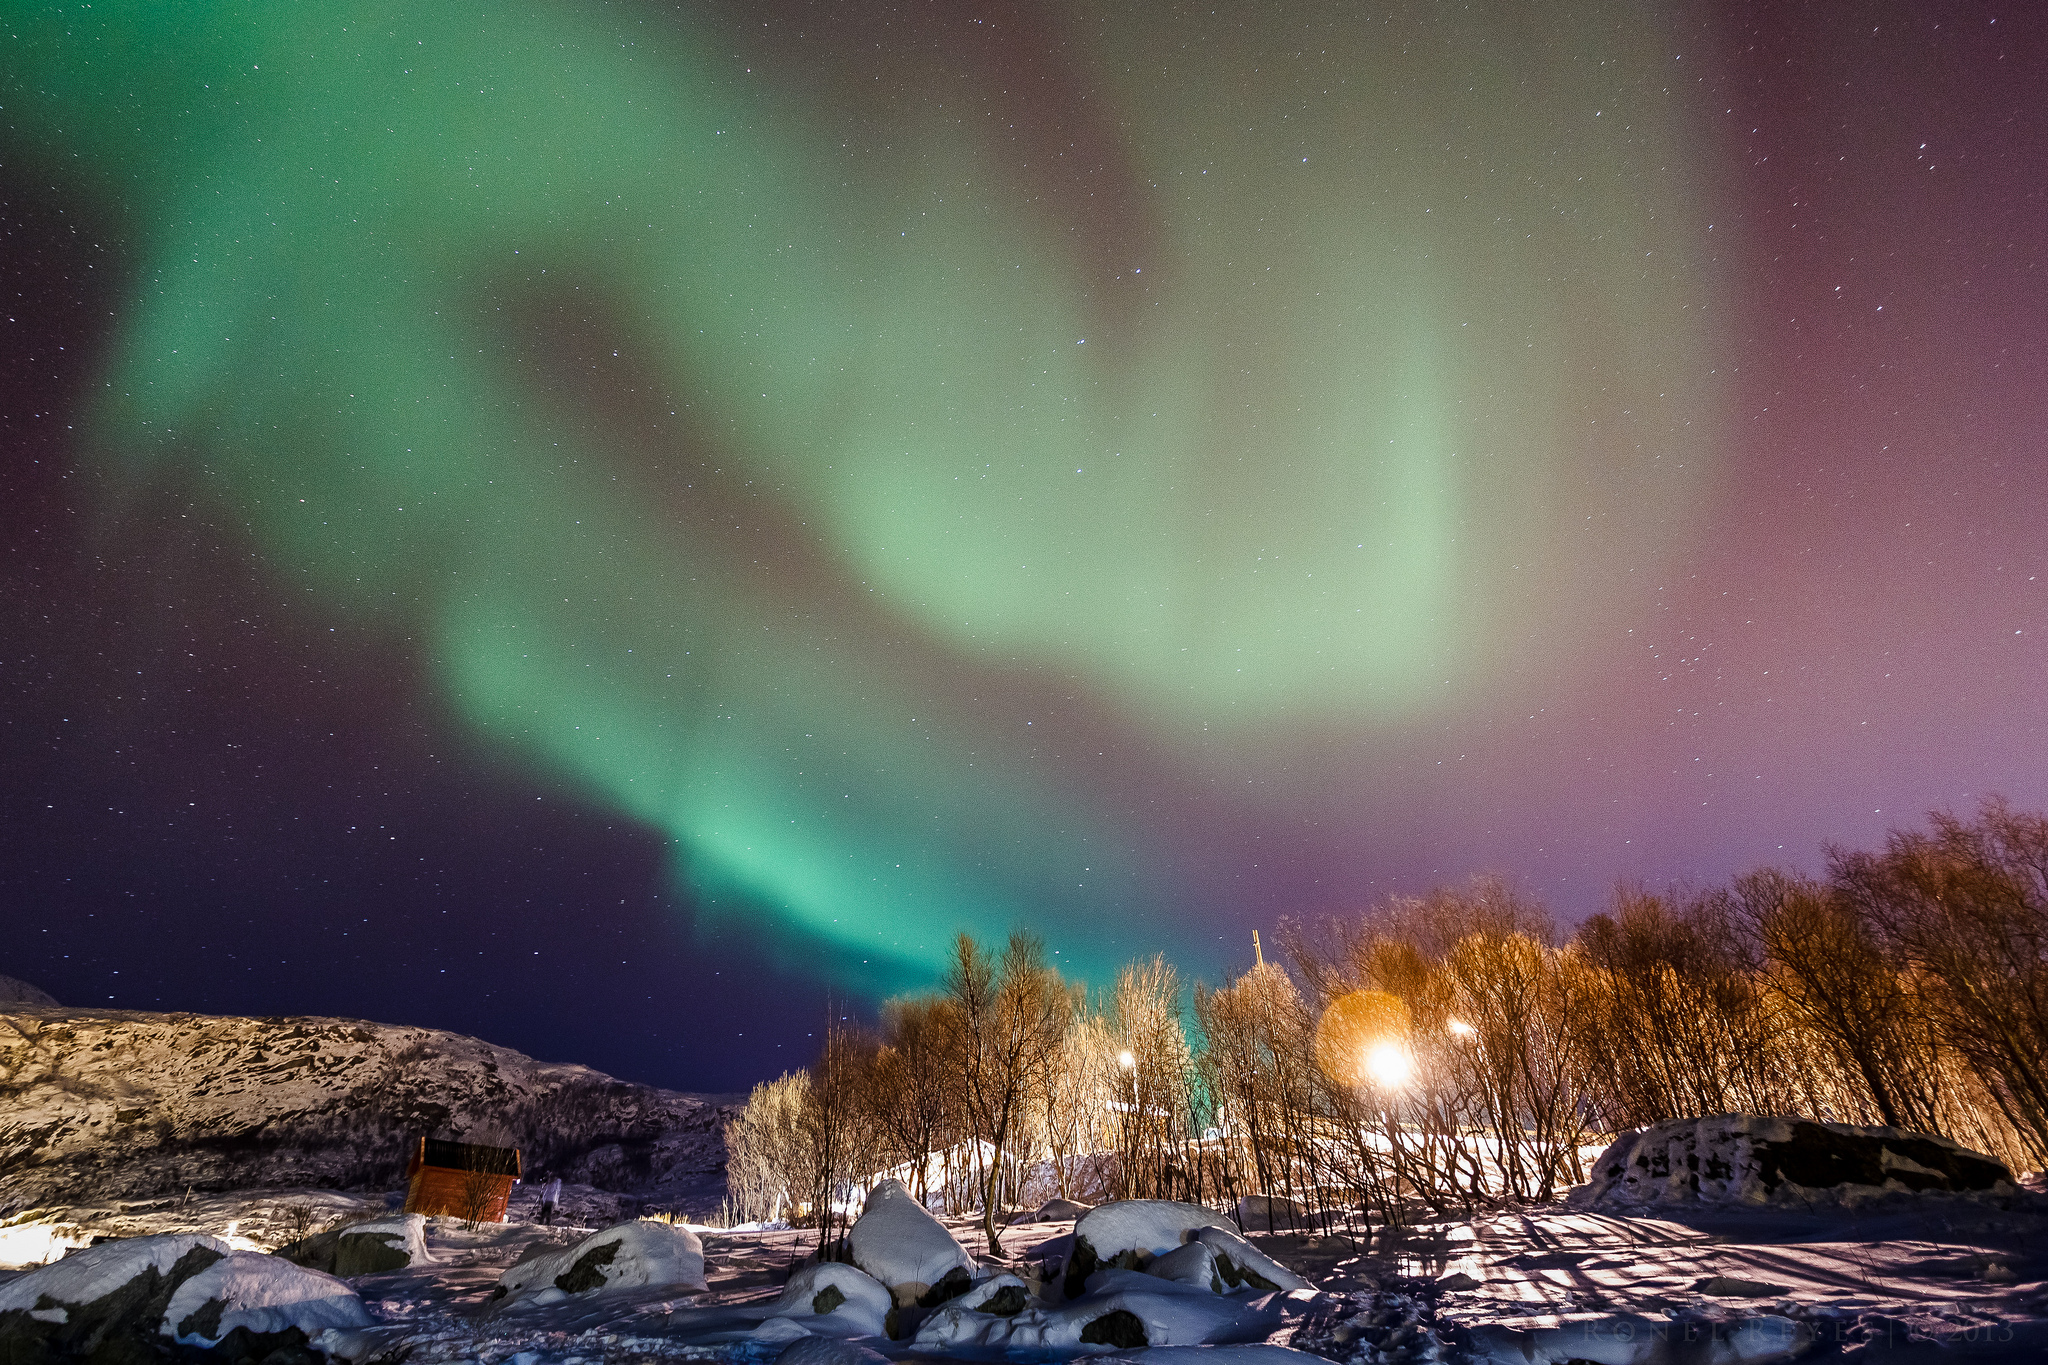 """Tromsø Northern Lights"" by Ronel Reyes via Flickr Creative Commons"